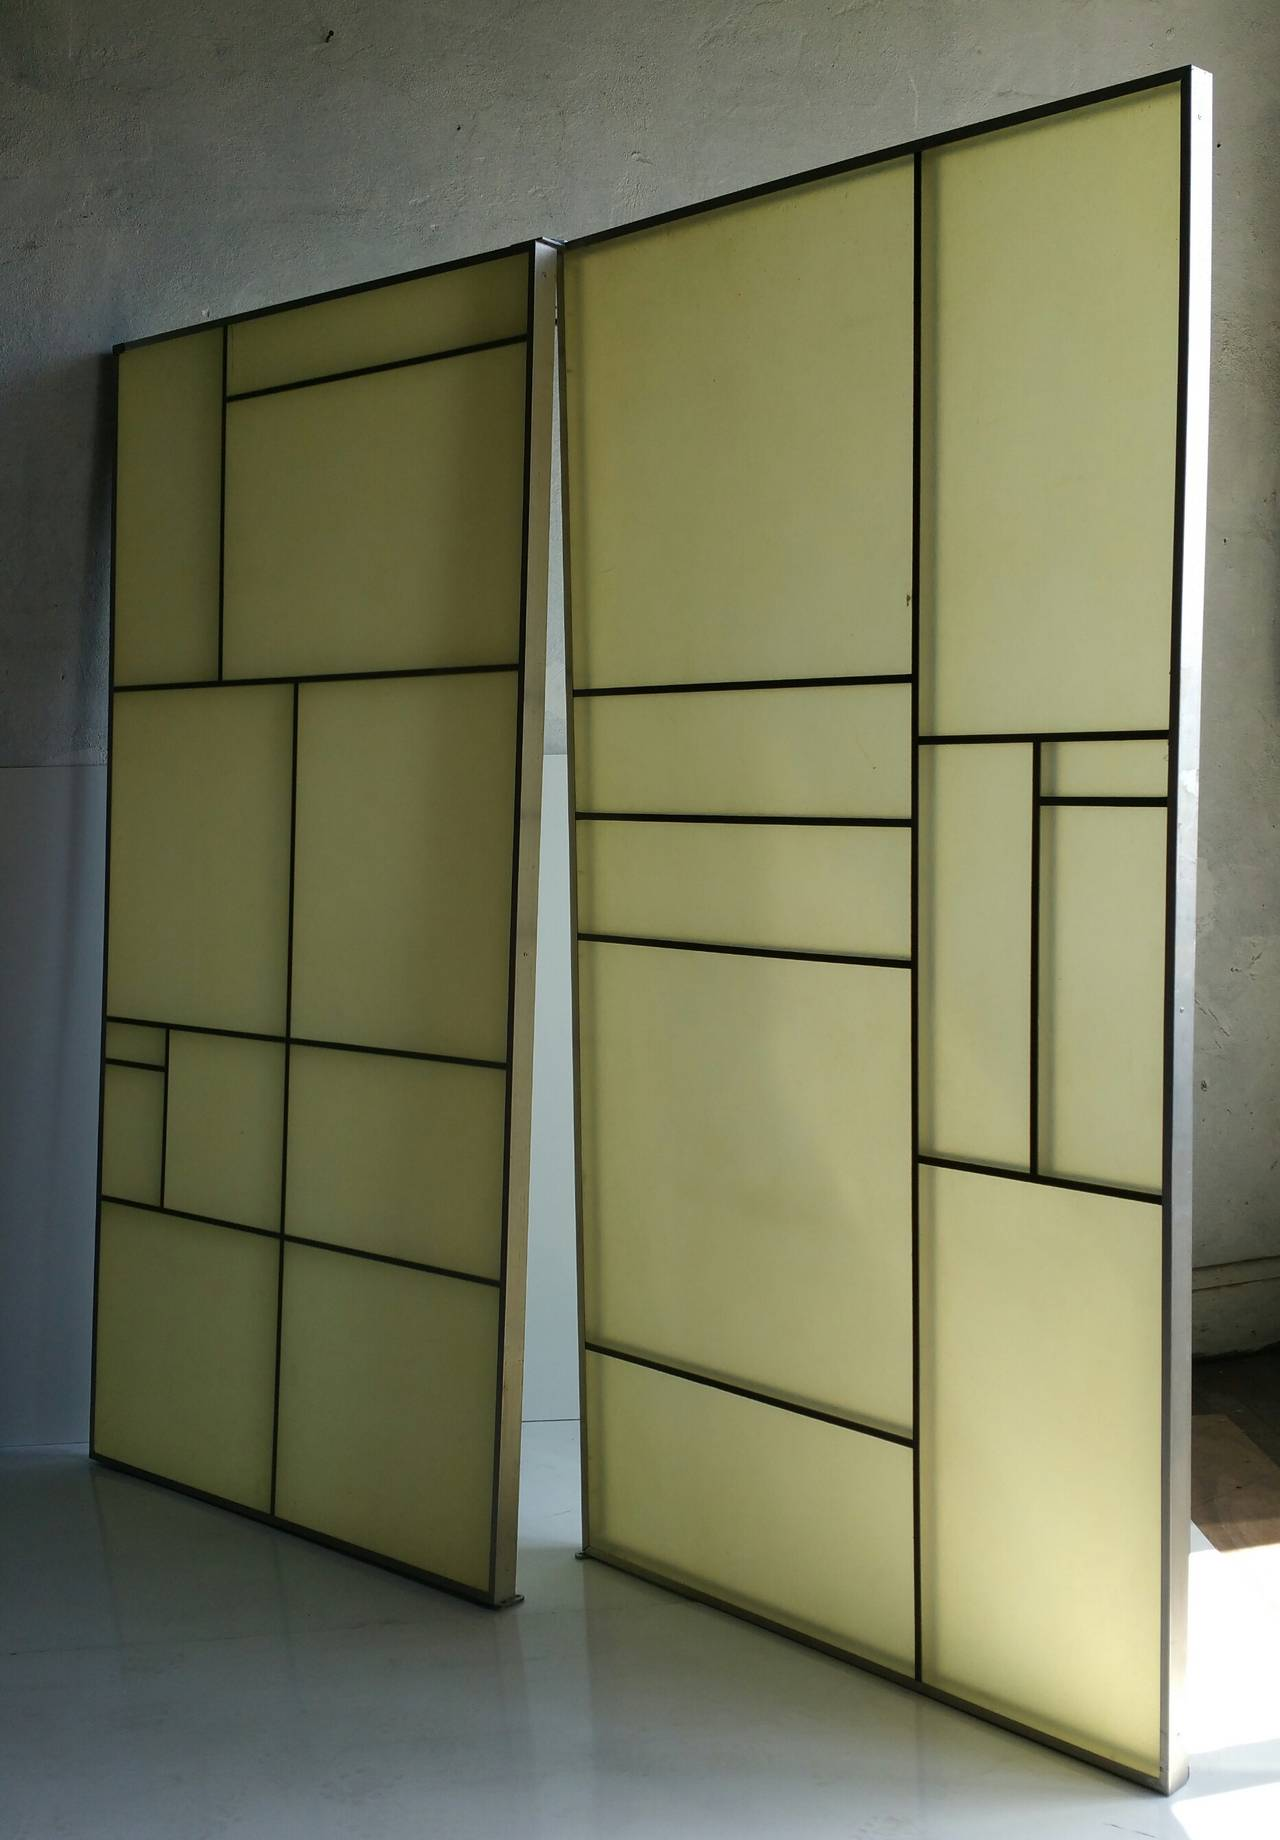 Very unusual aluminum and fiberglass panels, amazing Piet Mondrian design. Double sided. Retain aluminum mounting bracket affixed to top and bottom. Make a wonderful privacy screen, room divider, back lit décor.